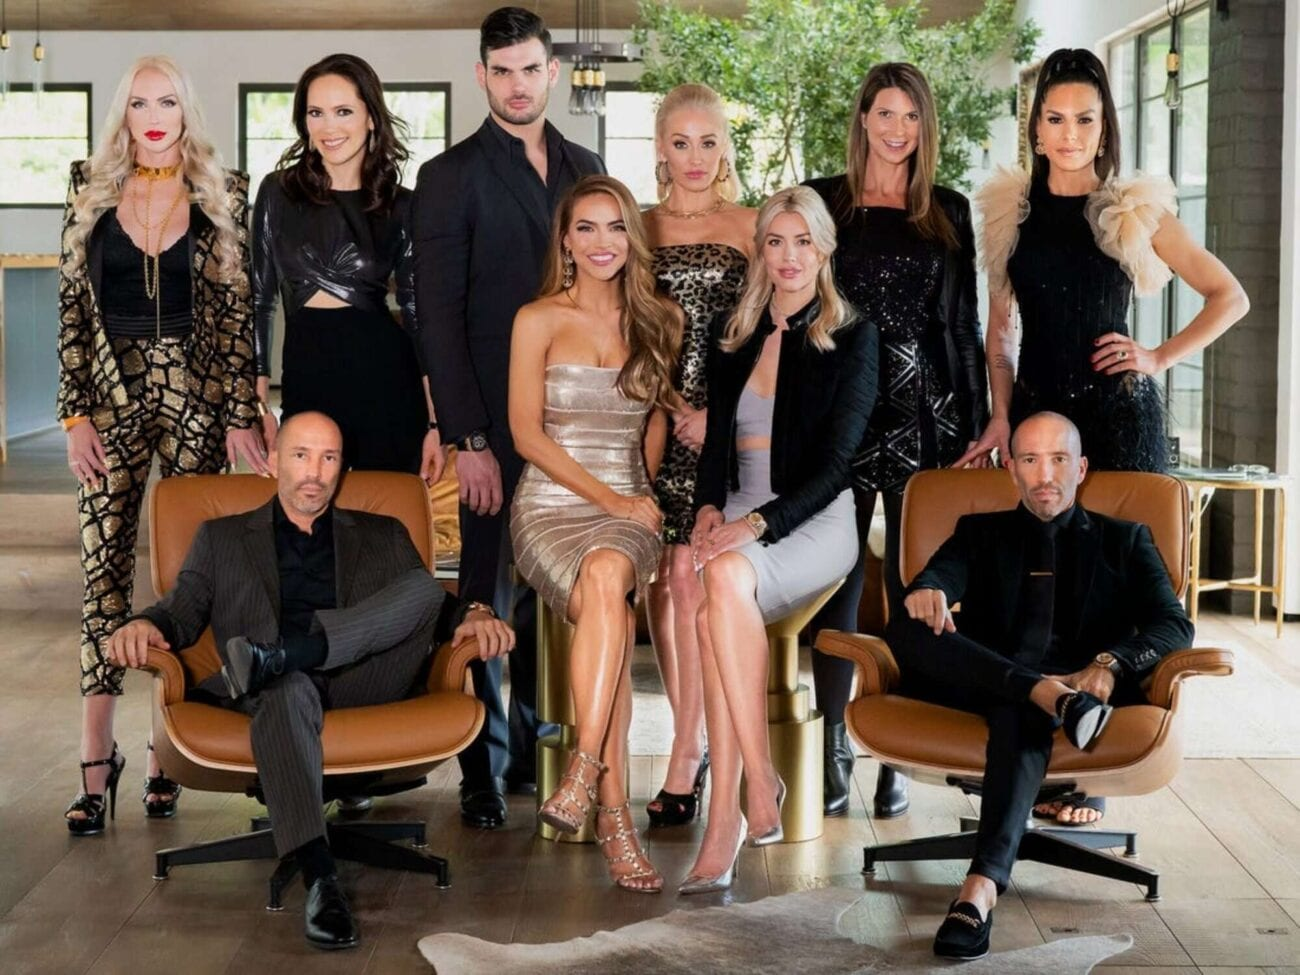 How does the cast of 'Selling Sunset' look so gorgeous? Find out the ins and outs of selling lavish houses in West Hollywood.